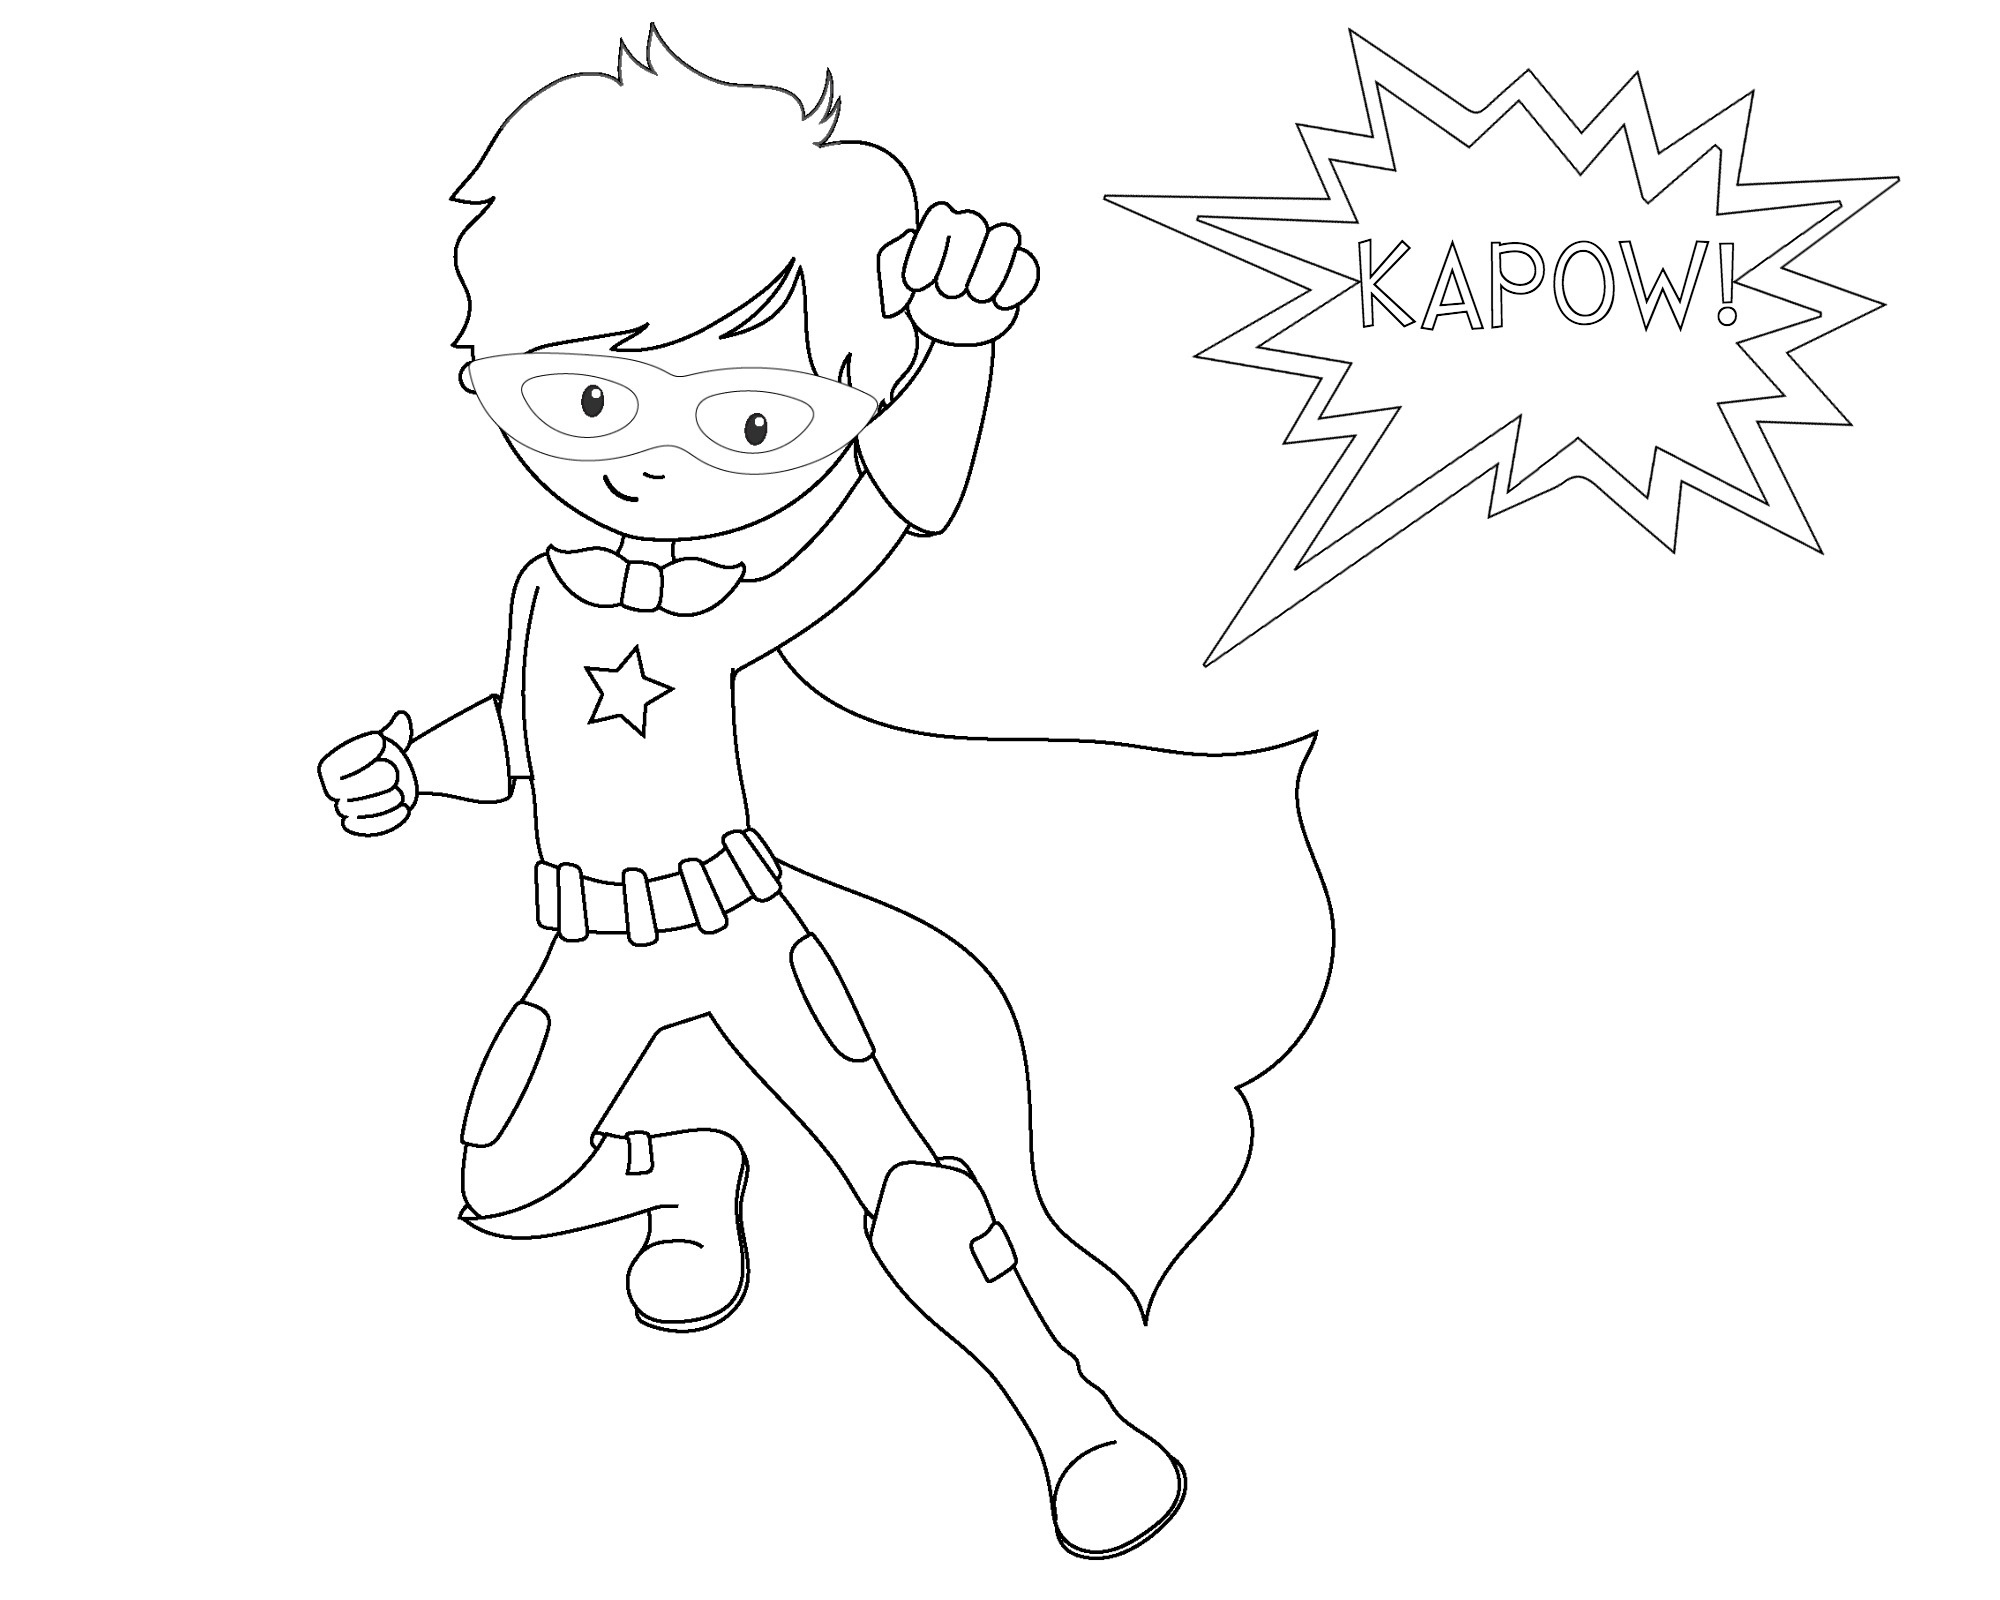 Free Printable Superhero Coloring Sheets For Kids - Crazy Little - Free Printable Superhero Coloring Pages Pdf